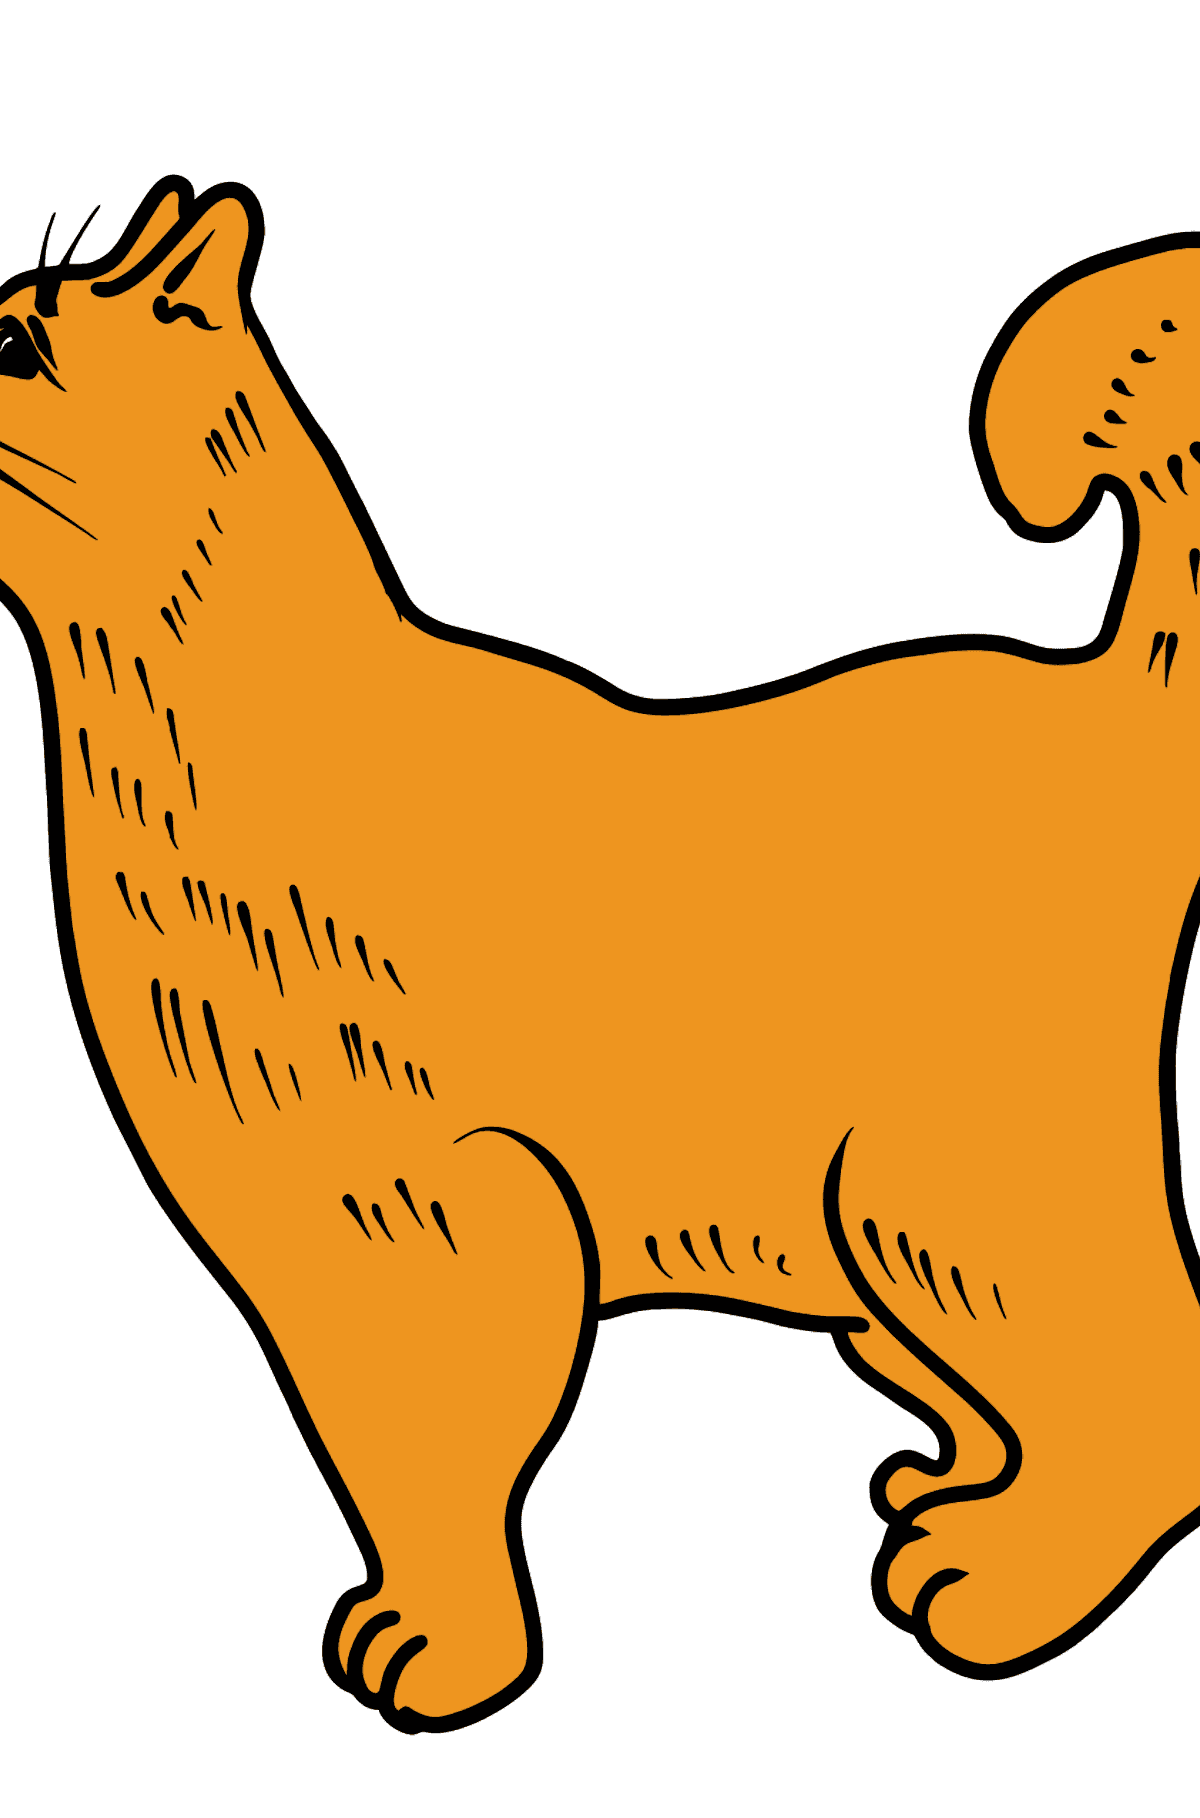 Cat coloring page - Coloring Pages for Kids